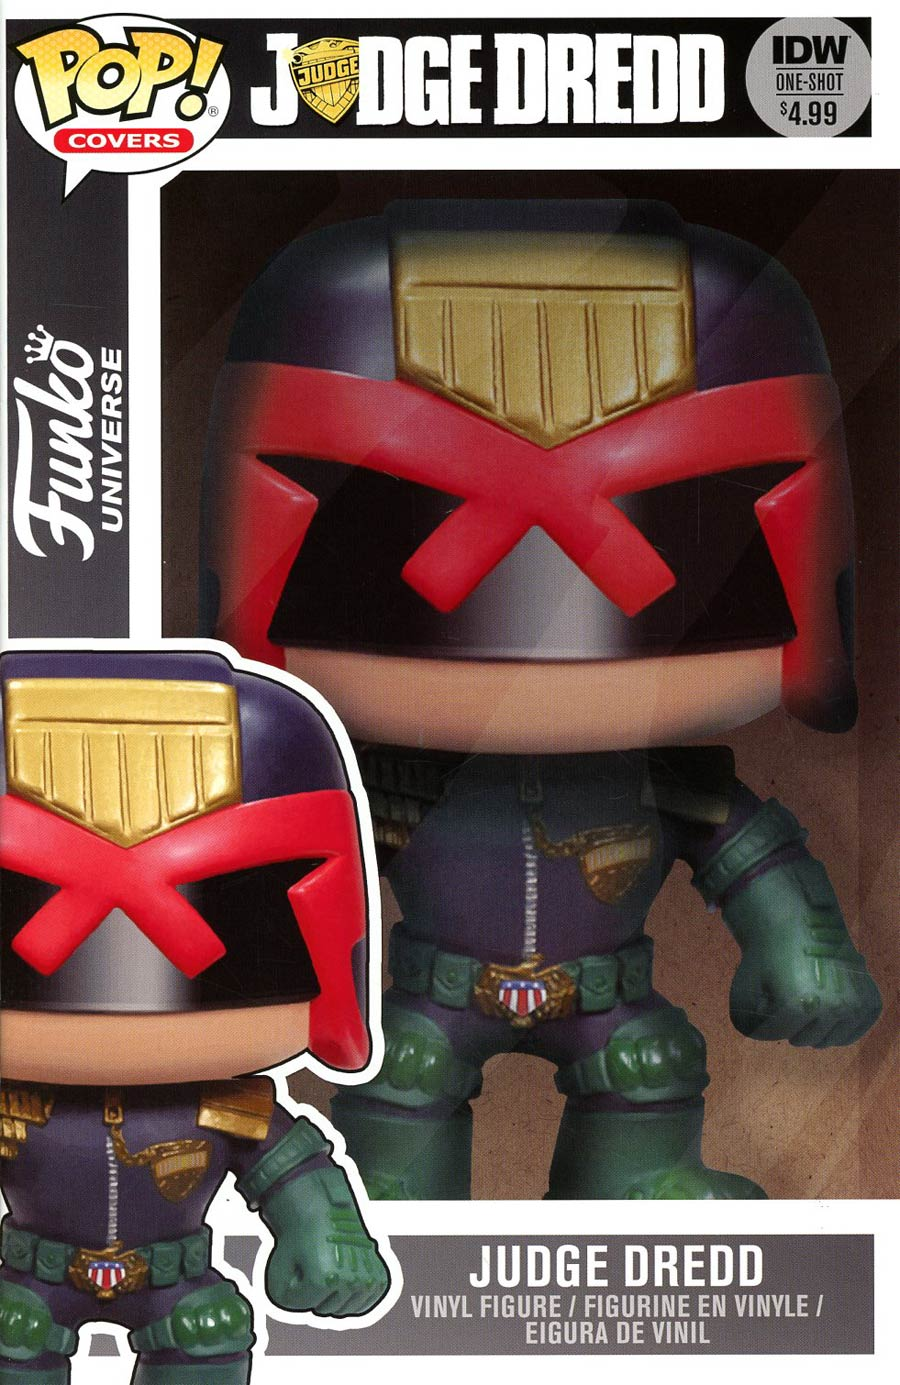 Judge Dredd Funko Universe Cover B Variant Funko Toy Subscription Cover